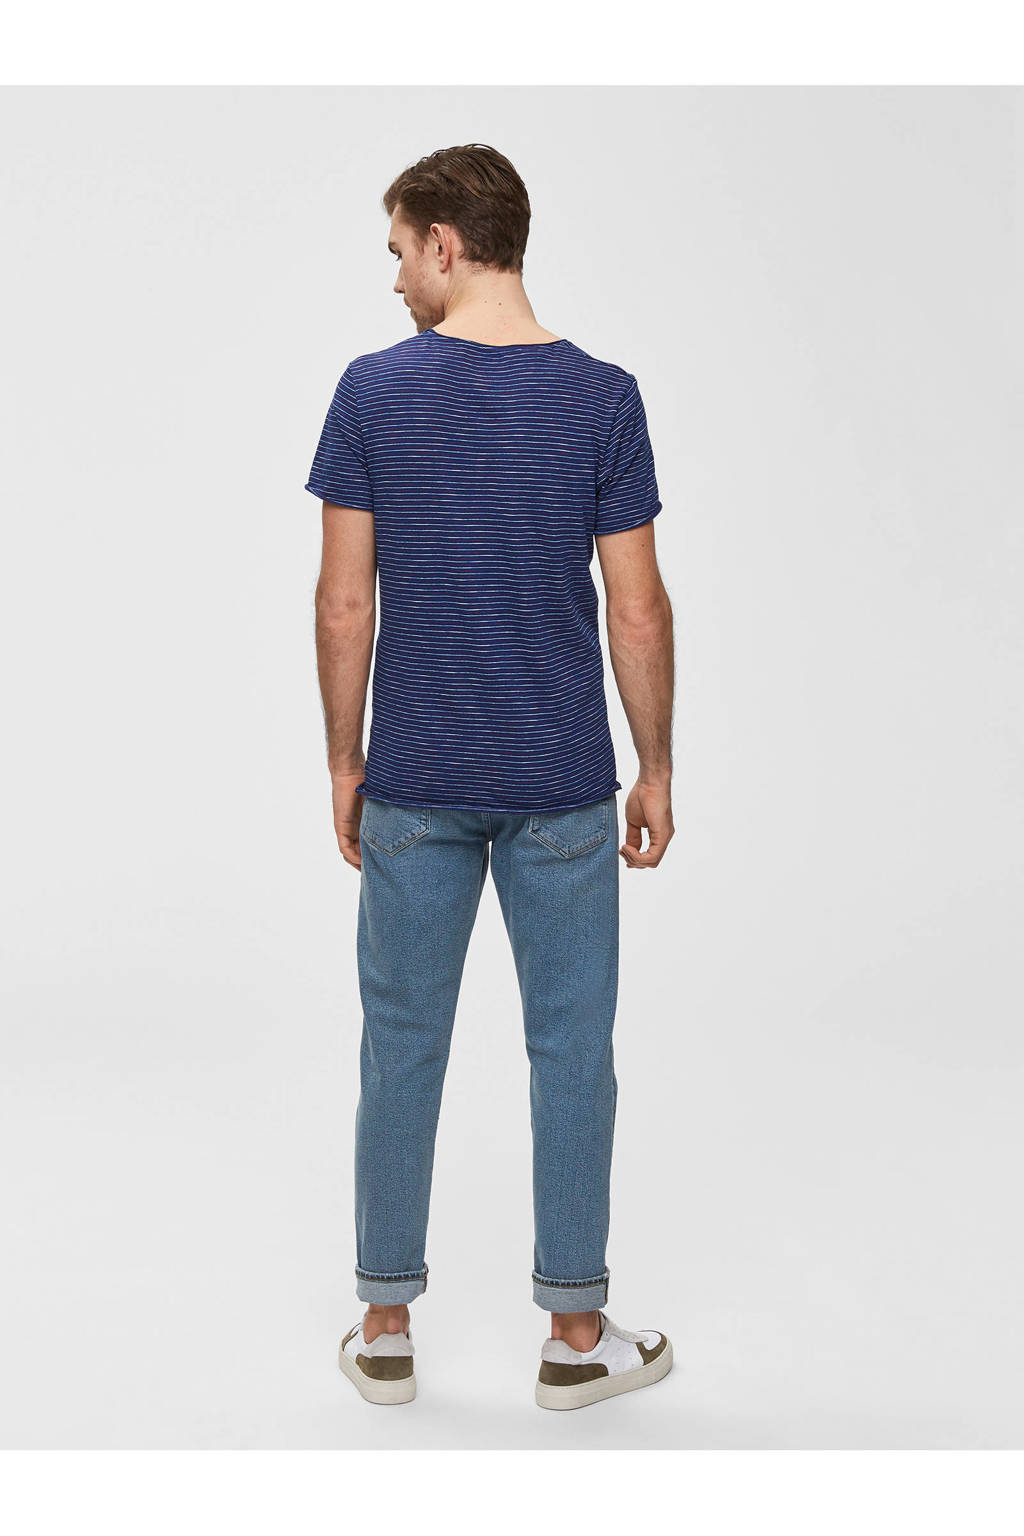 SELECTED HOMME T-shirt, Donkerblauw